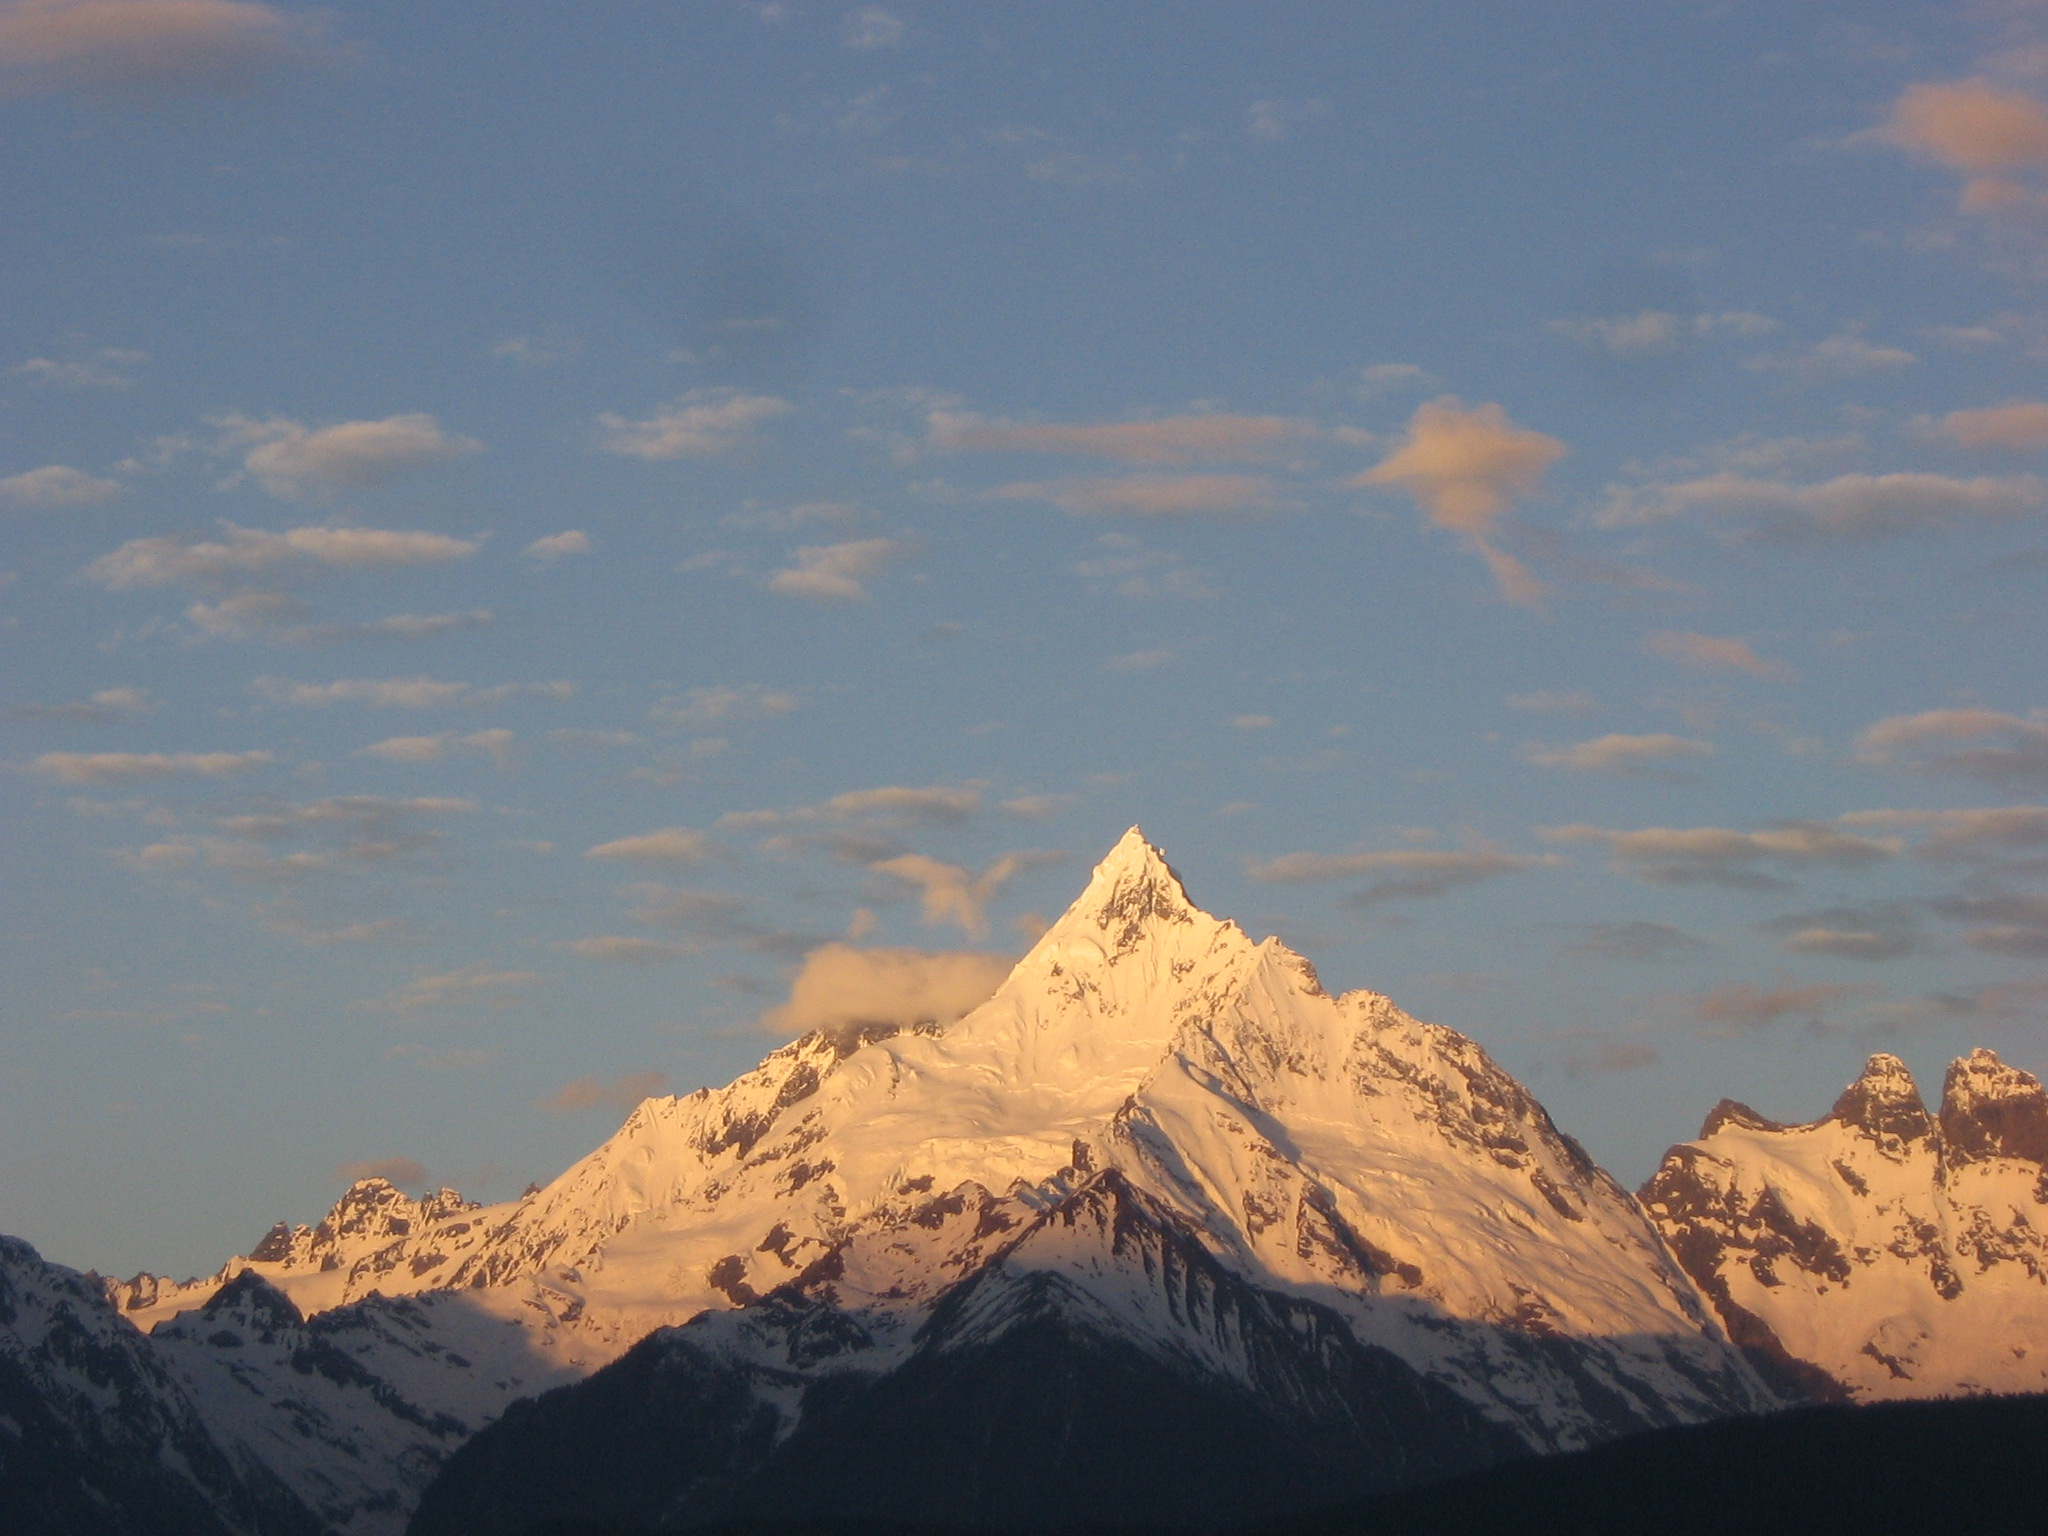 Sunrise in the Himalya mountains